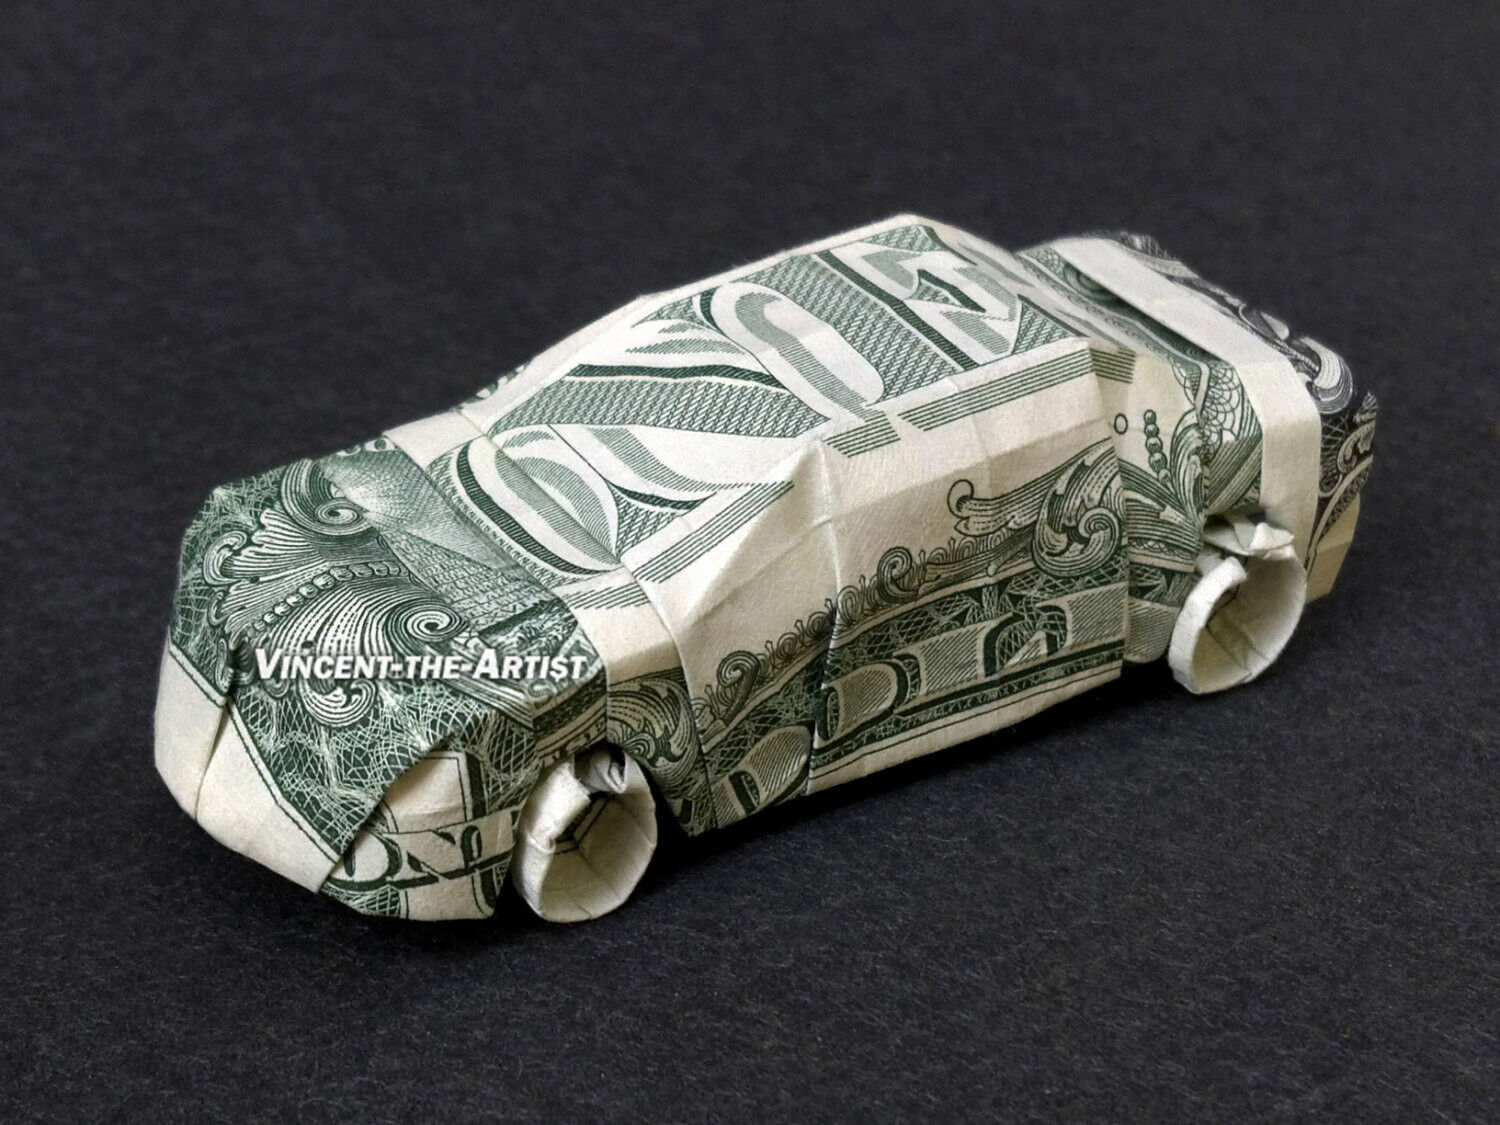 Money Origami Art - Many designs to choose from. Unique ... - photo#27